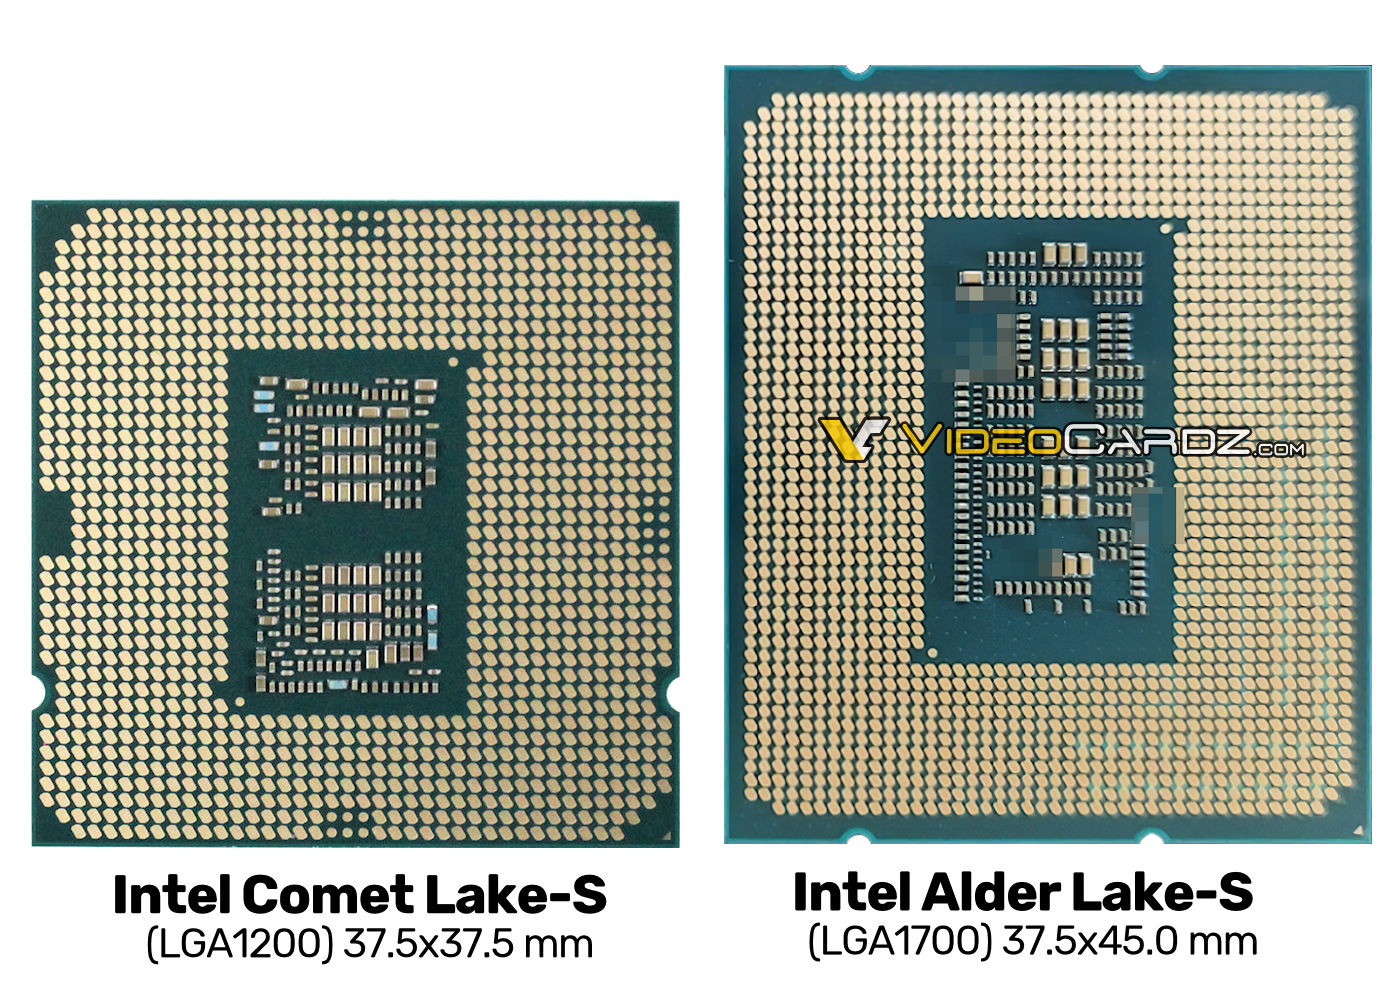 https://www.coolaler.com.tw/image/news/20/10/Intel-Alder-Lake-S-CPU.jpg